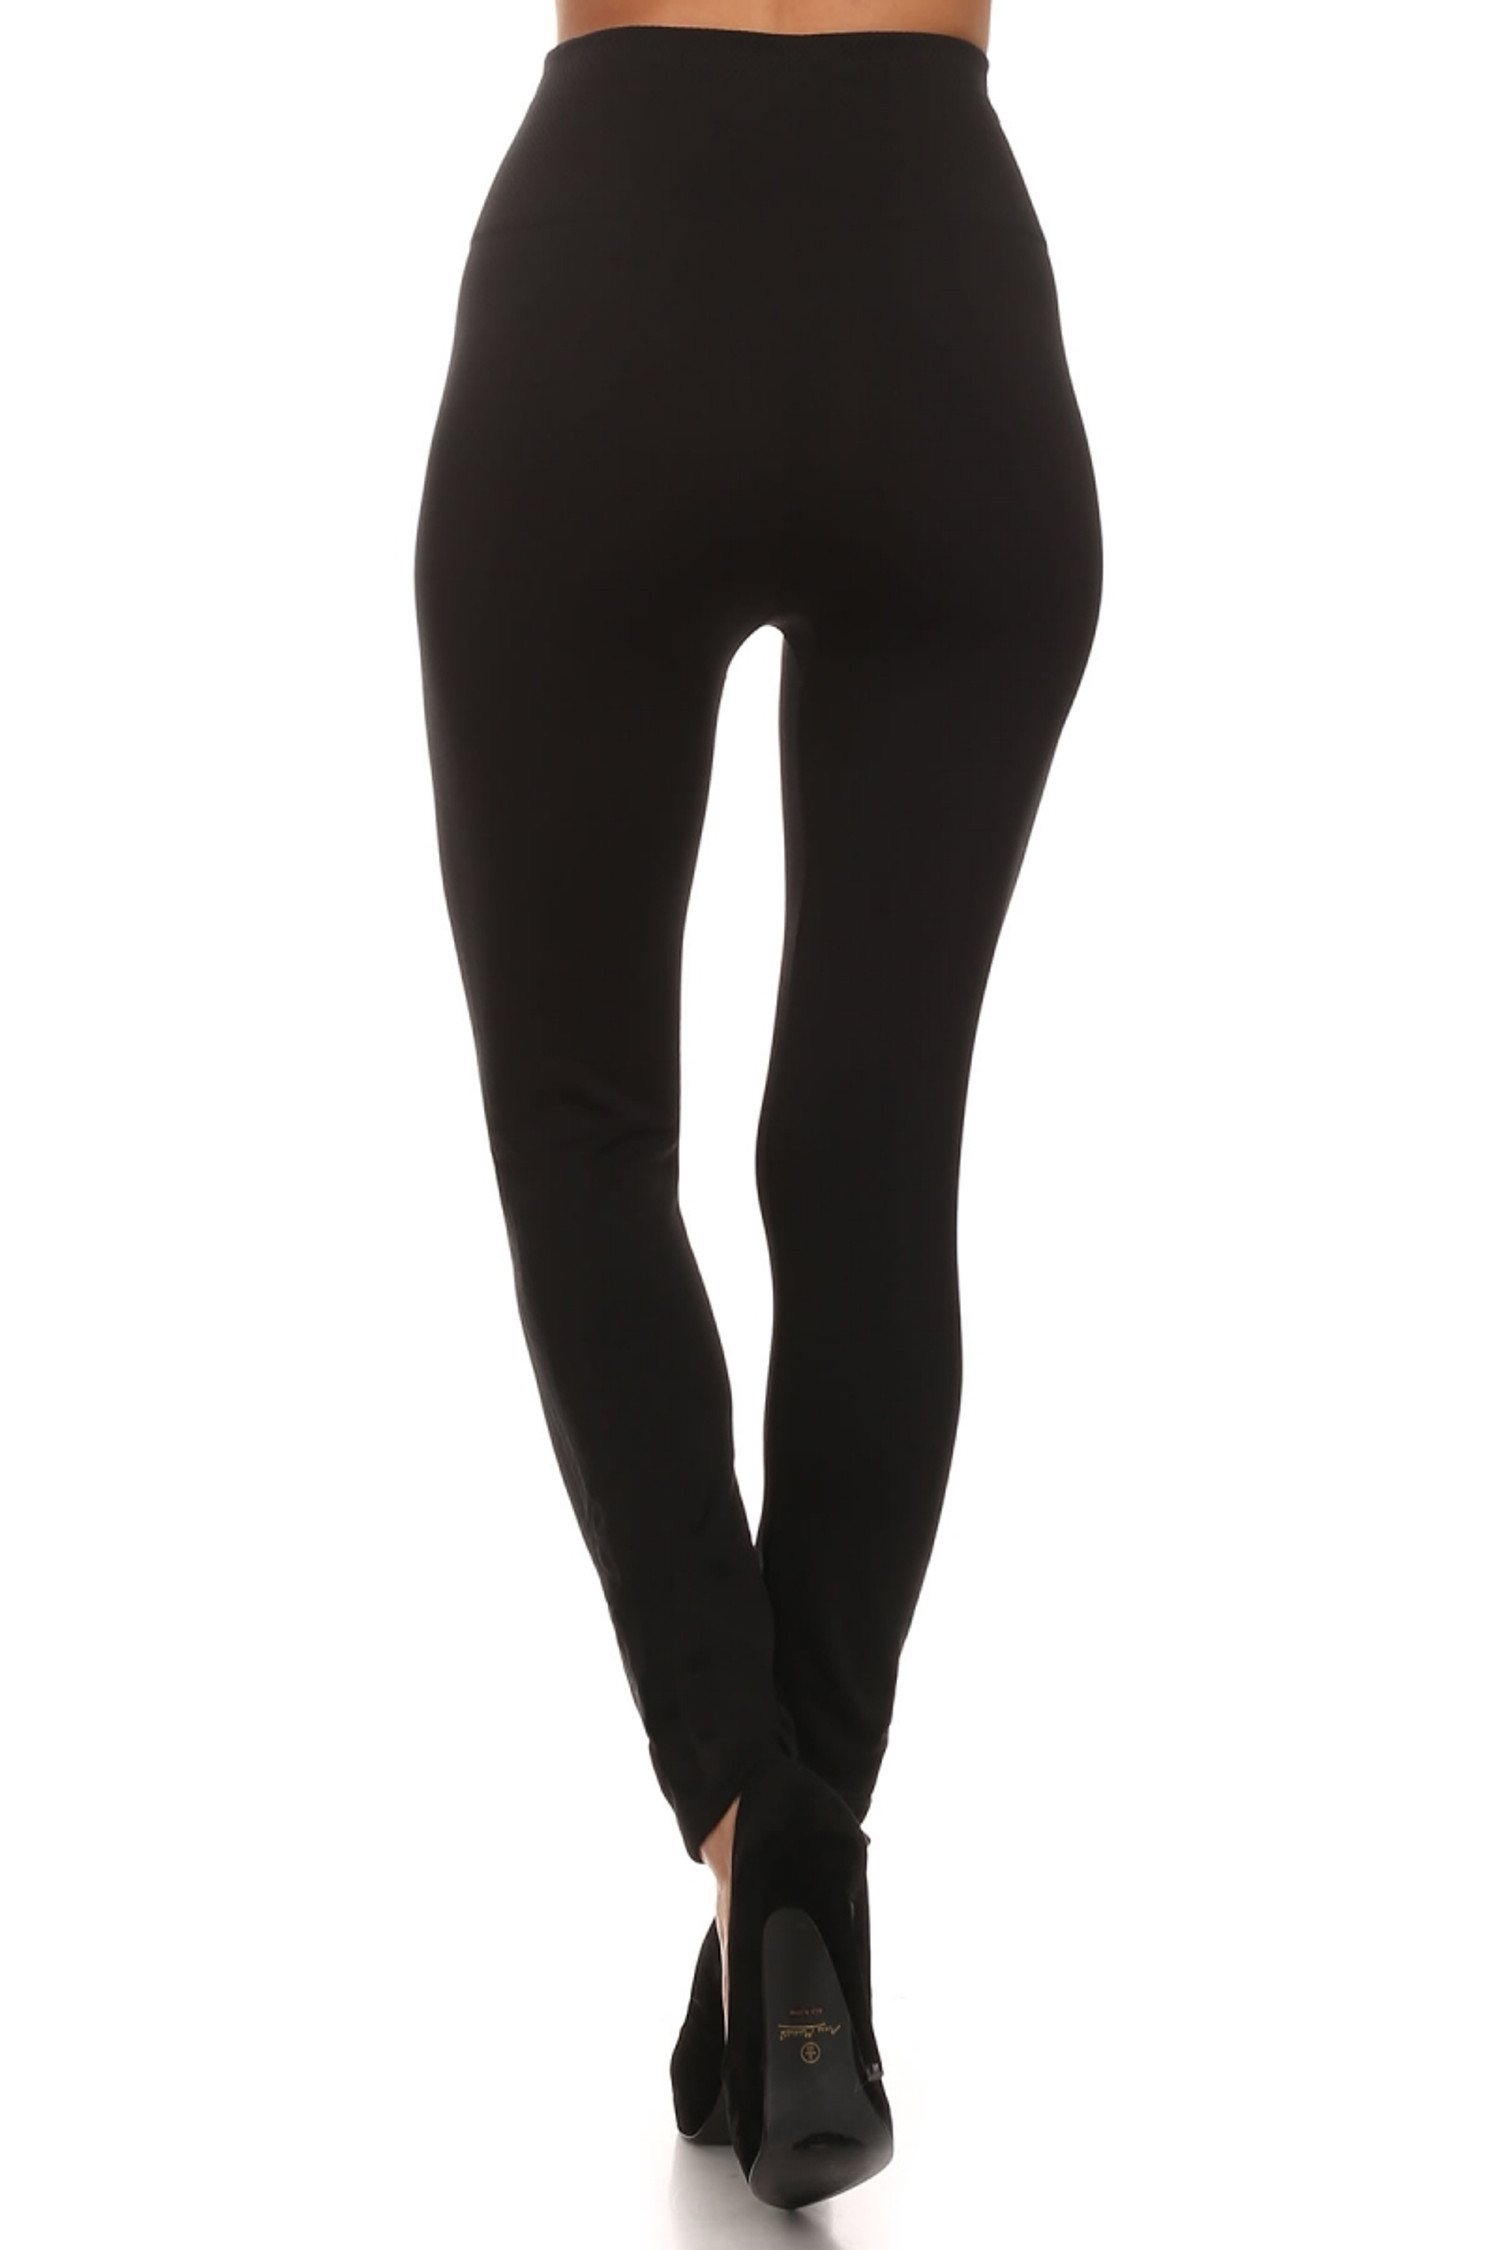 Rear image of our Black Banded High Waisted Fleece Lined Leggings showing the ribbed high waisted fabric waist band and soft and comfortable full length fit of the fleece fabric